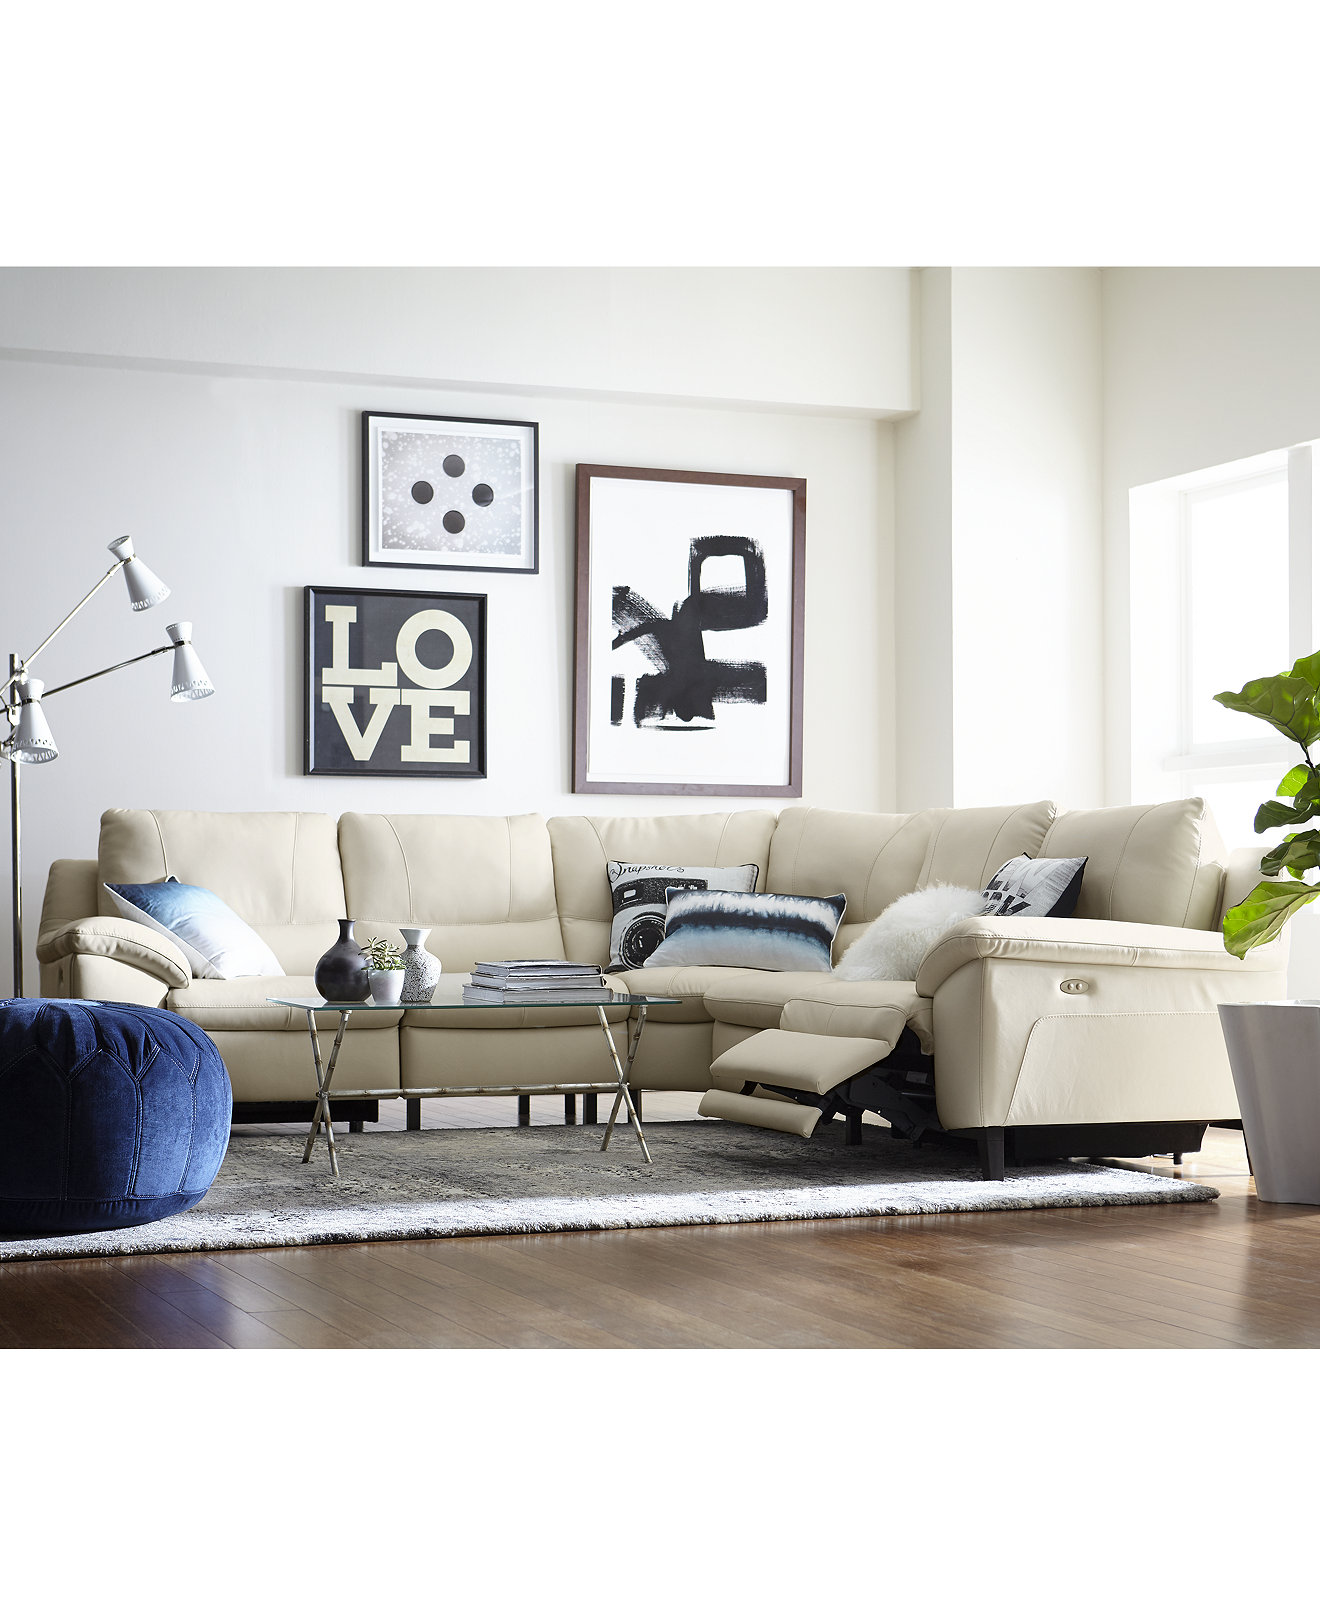 Larger viewstefana leather power reclining sectional sofa created for macy s